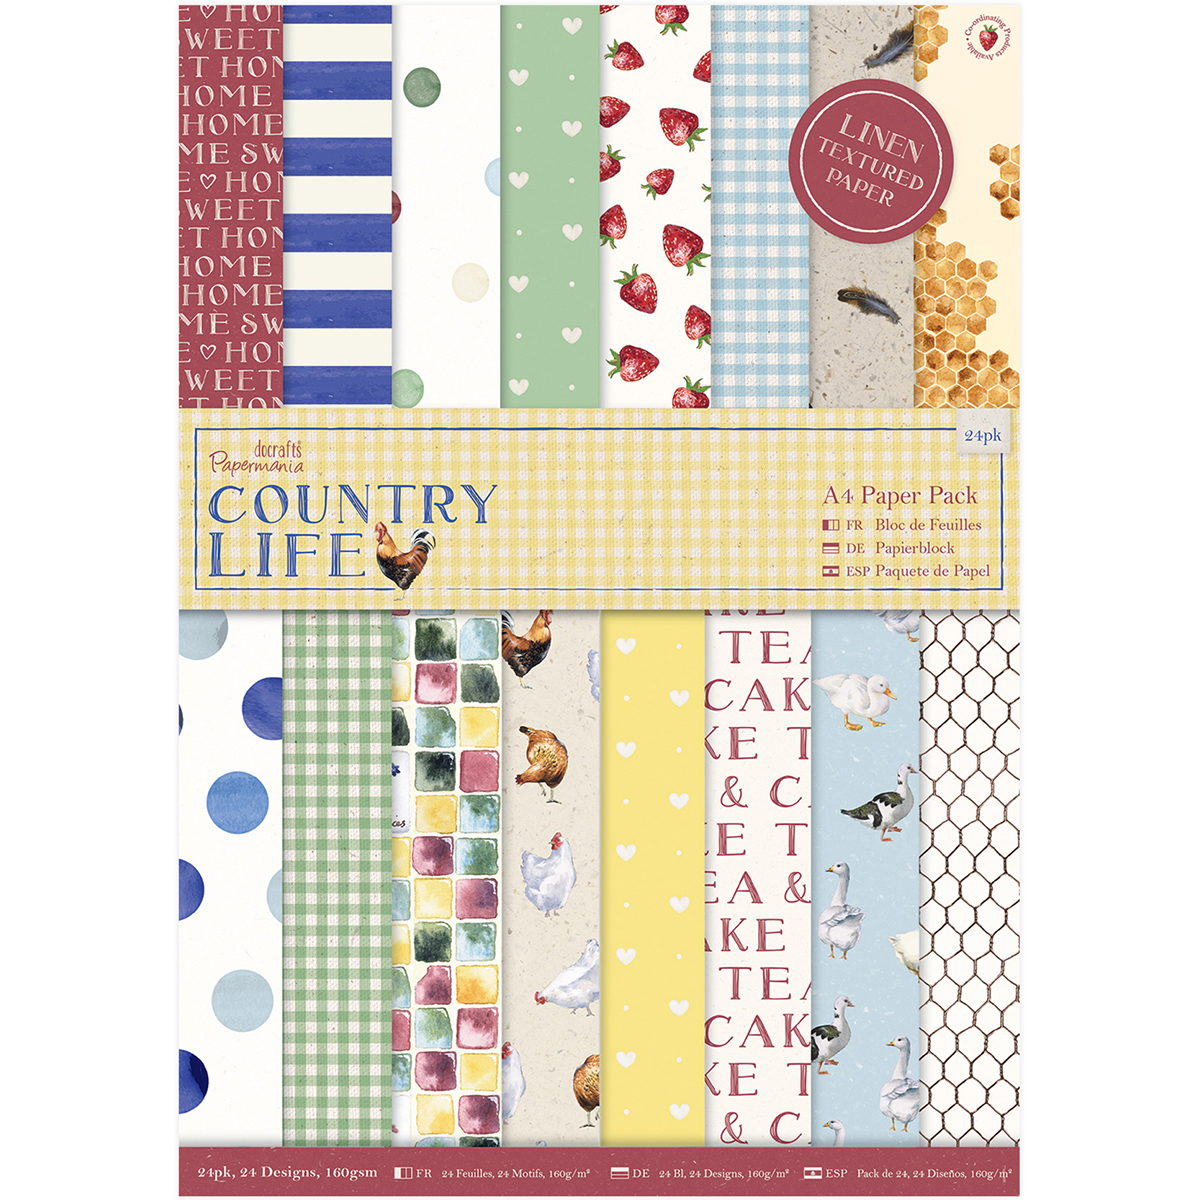 Papermania A4 Paper Pack 24/Pkg-Country Life, Linen Finish